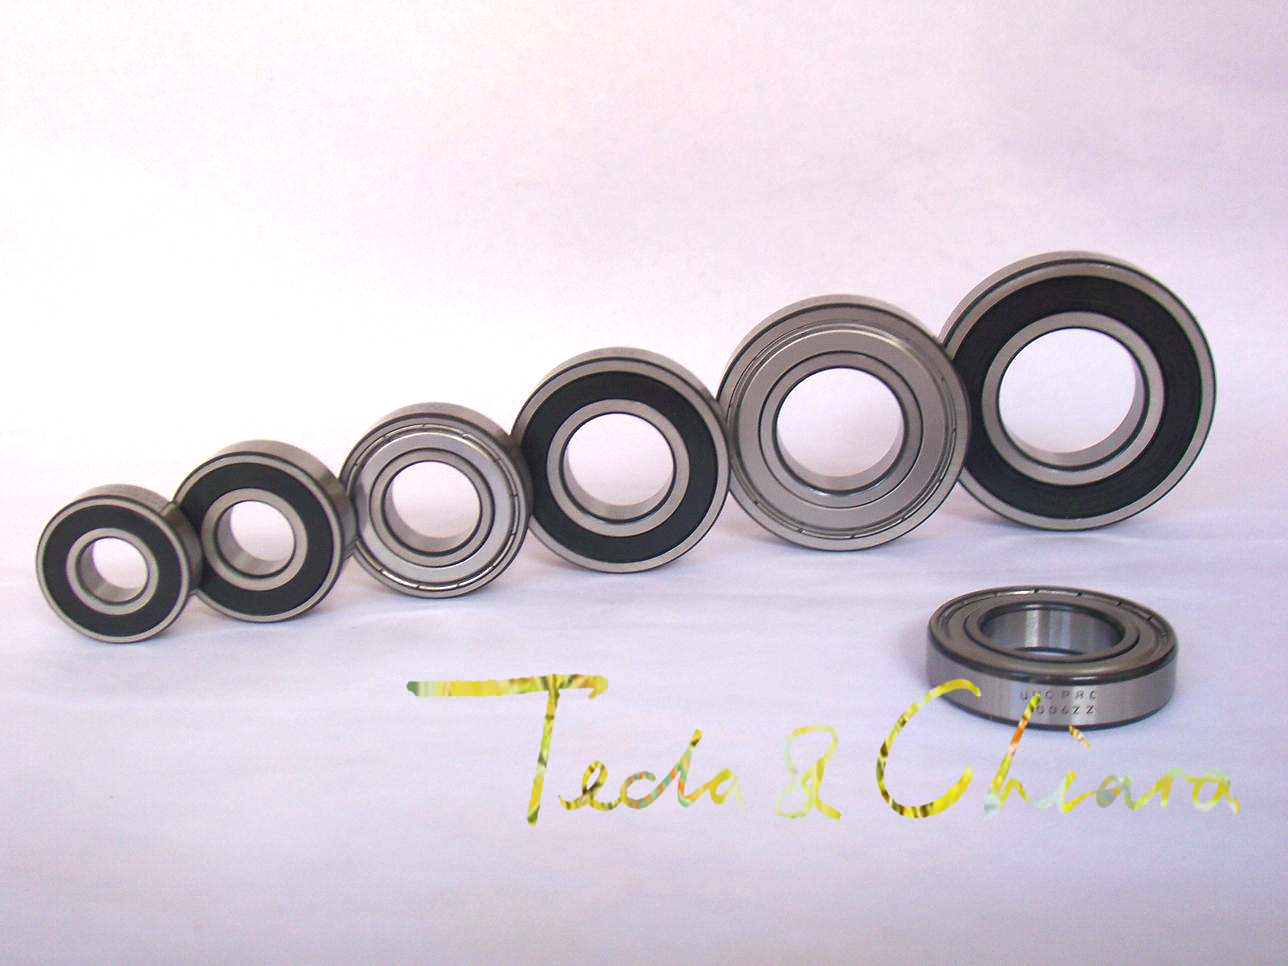 625 625ZZ 625RS 625-2Z 625Z 625-2RS ZZ RS RZ 2RZ Deep Groove Ball Bearings 5 x 16 x 5mm High Quality f625 2z f625zz f625zz f625 zz flanged flange deep groove ball bearings 5 x 16 x 5mm for 3d printer free shipping high quality